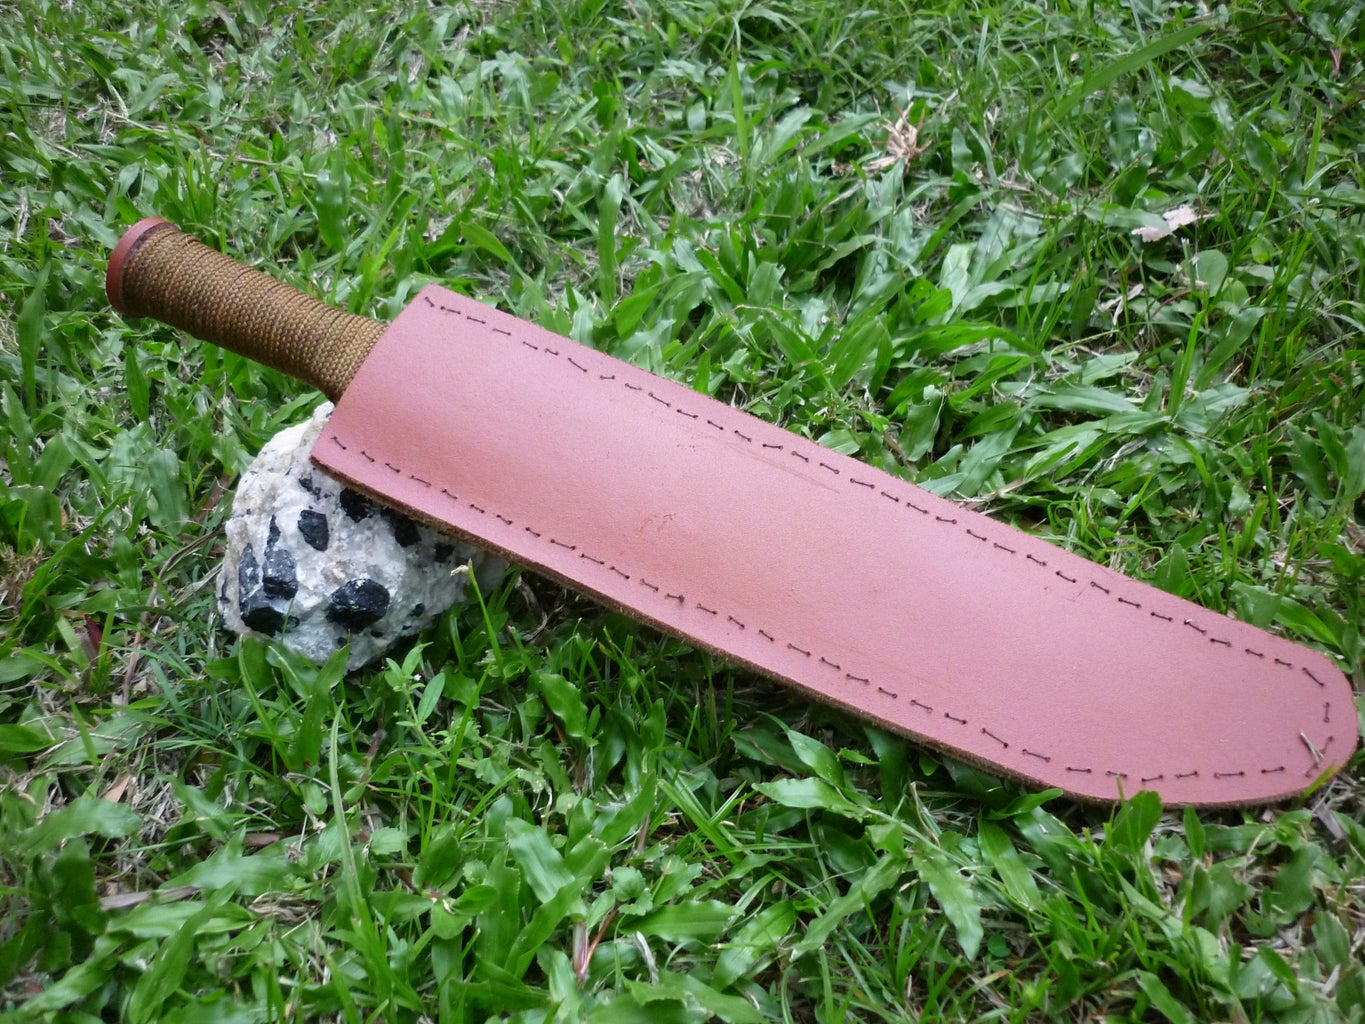 How to Make a Knife Sheath From Leather